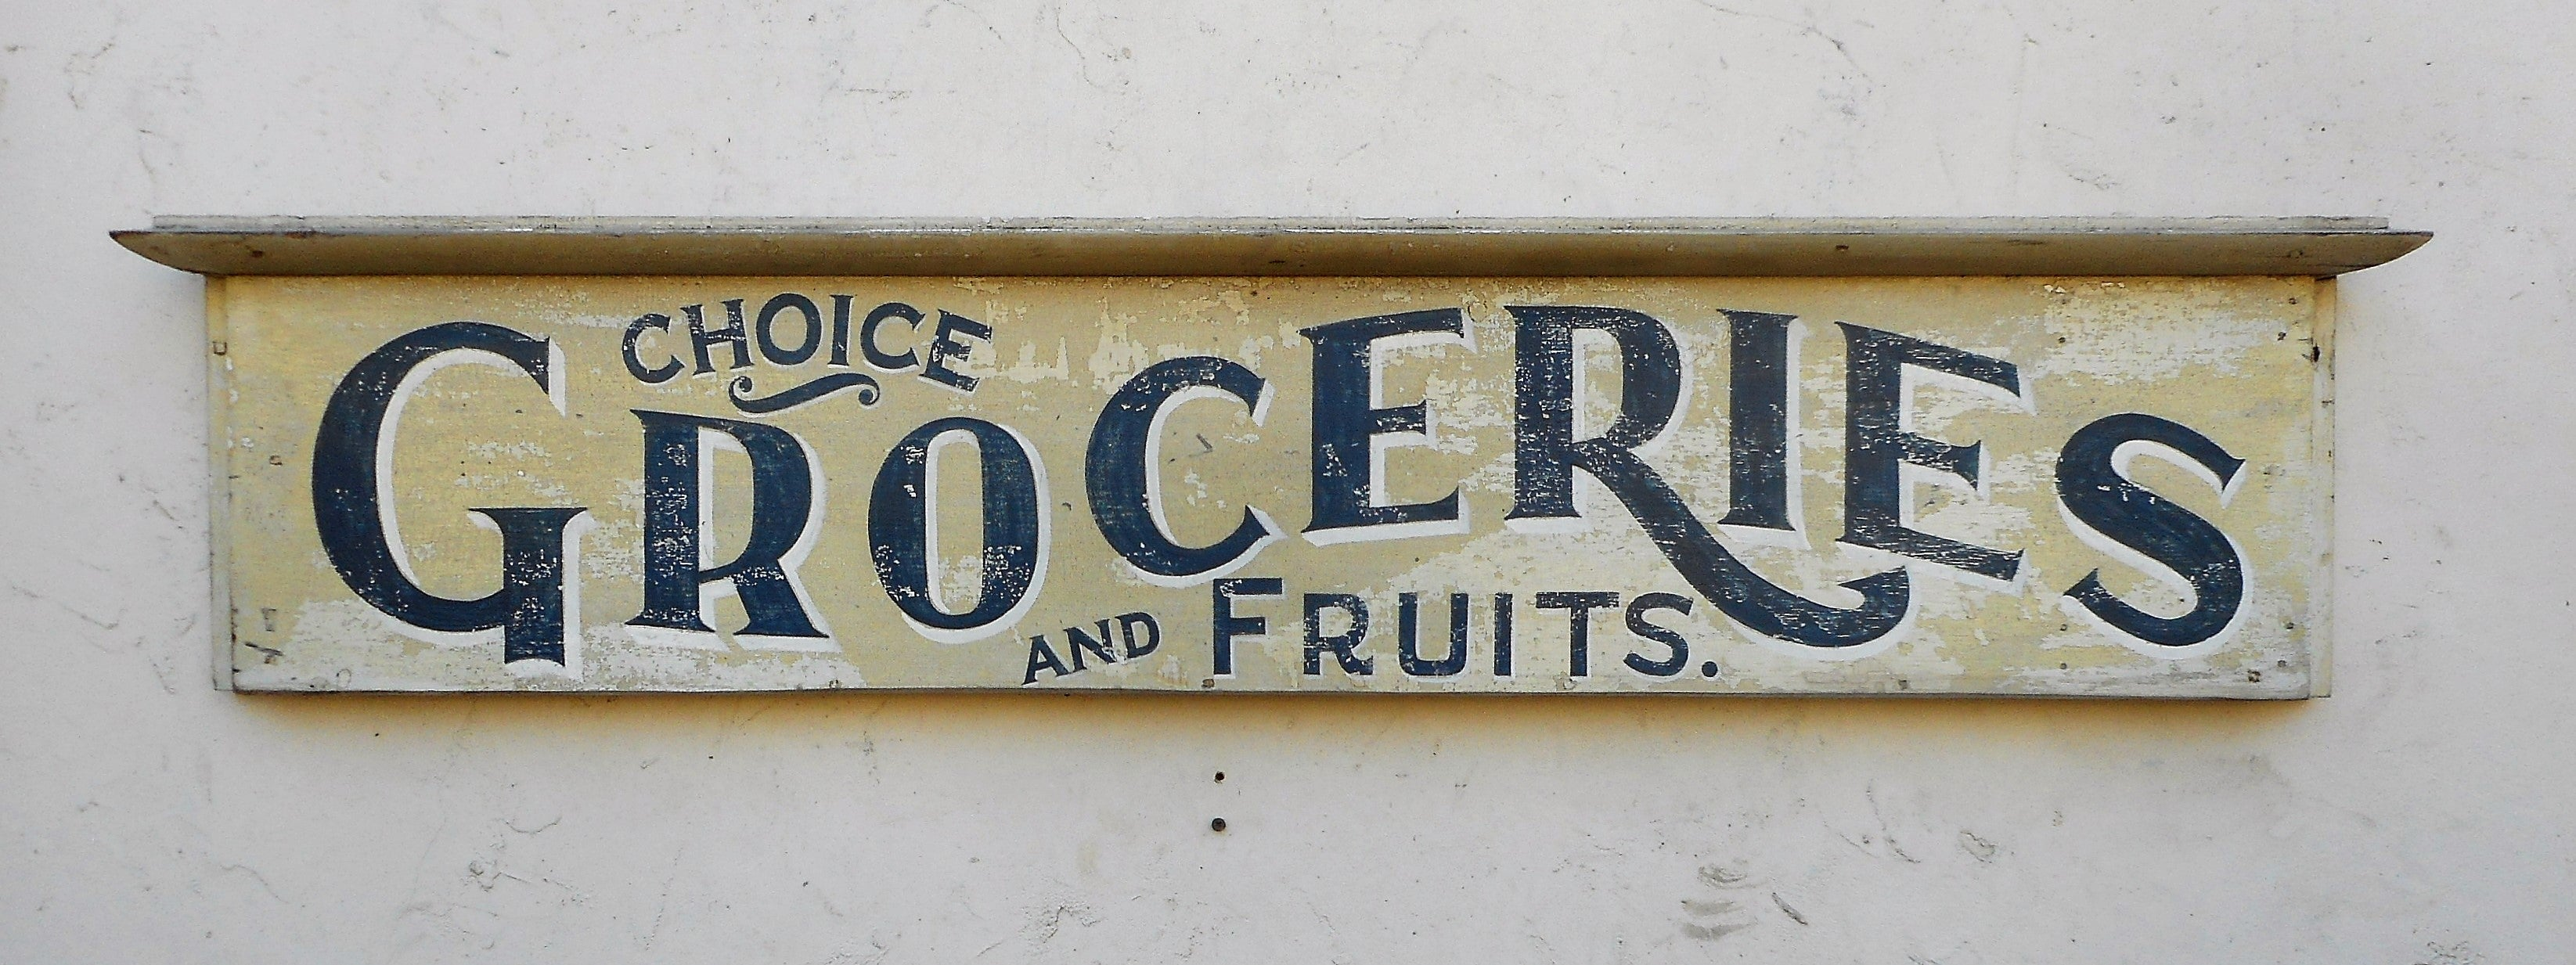 Choice Groceries and Fruit